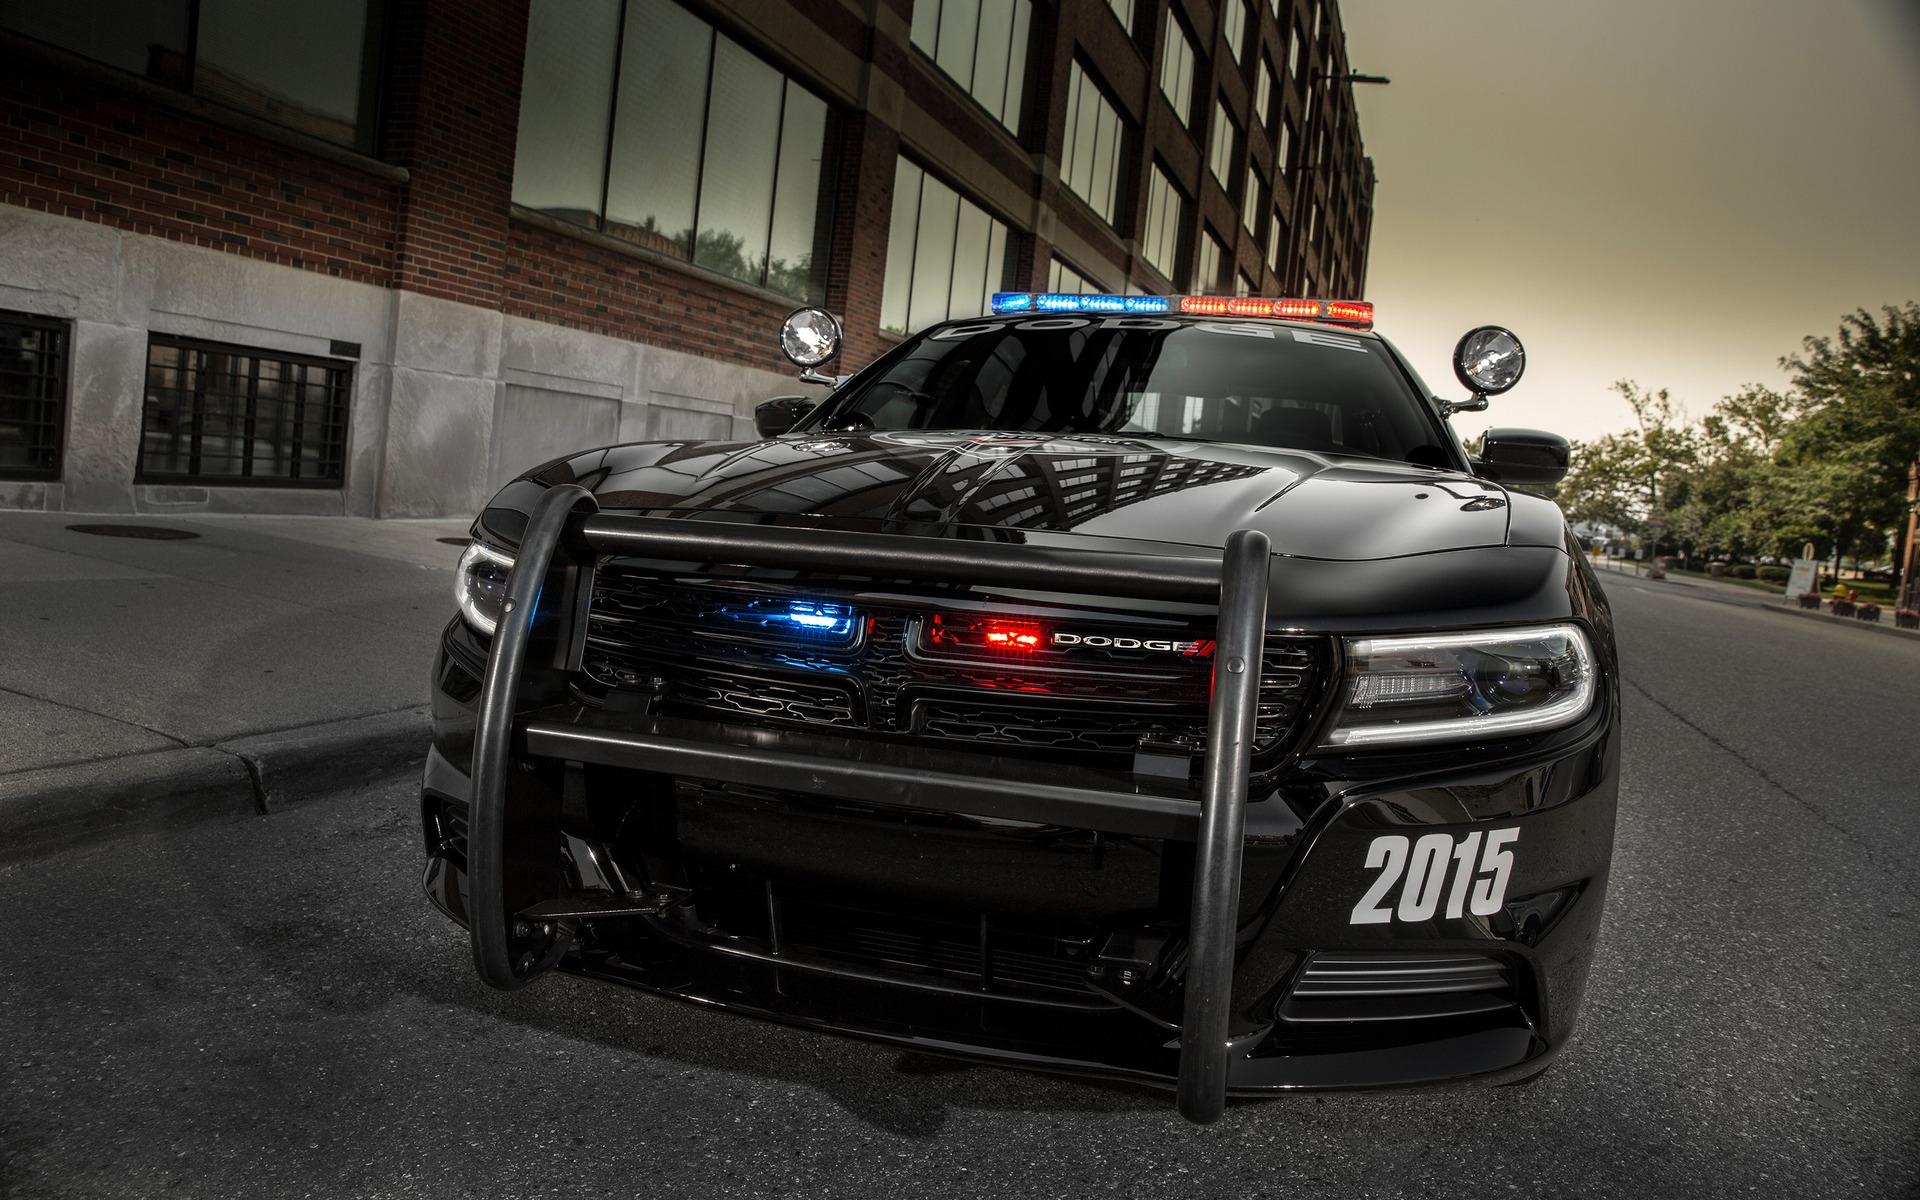 Cop Cars For Sale >> Which Is The Best Cop Car? - Dodge Charger - Ford Taurus - Chevrolet Impala - The Car Guide